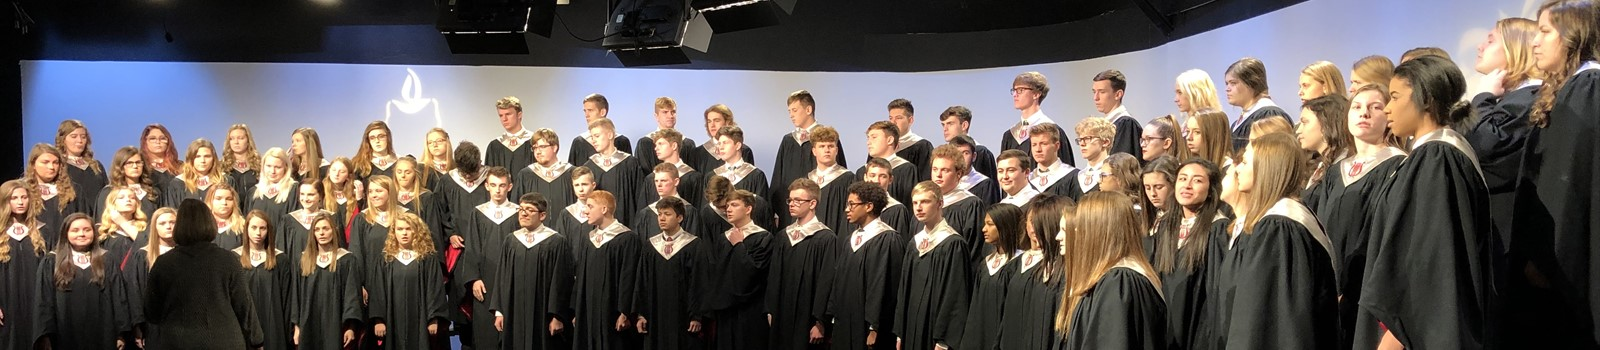 VWHS choir performing at Channel 44